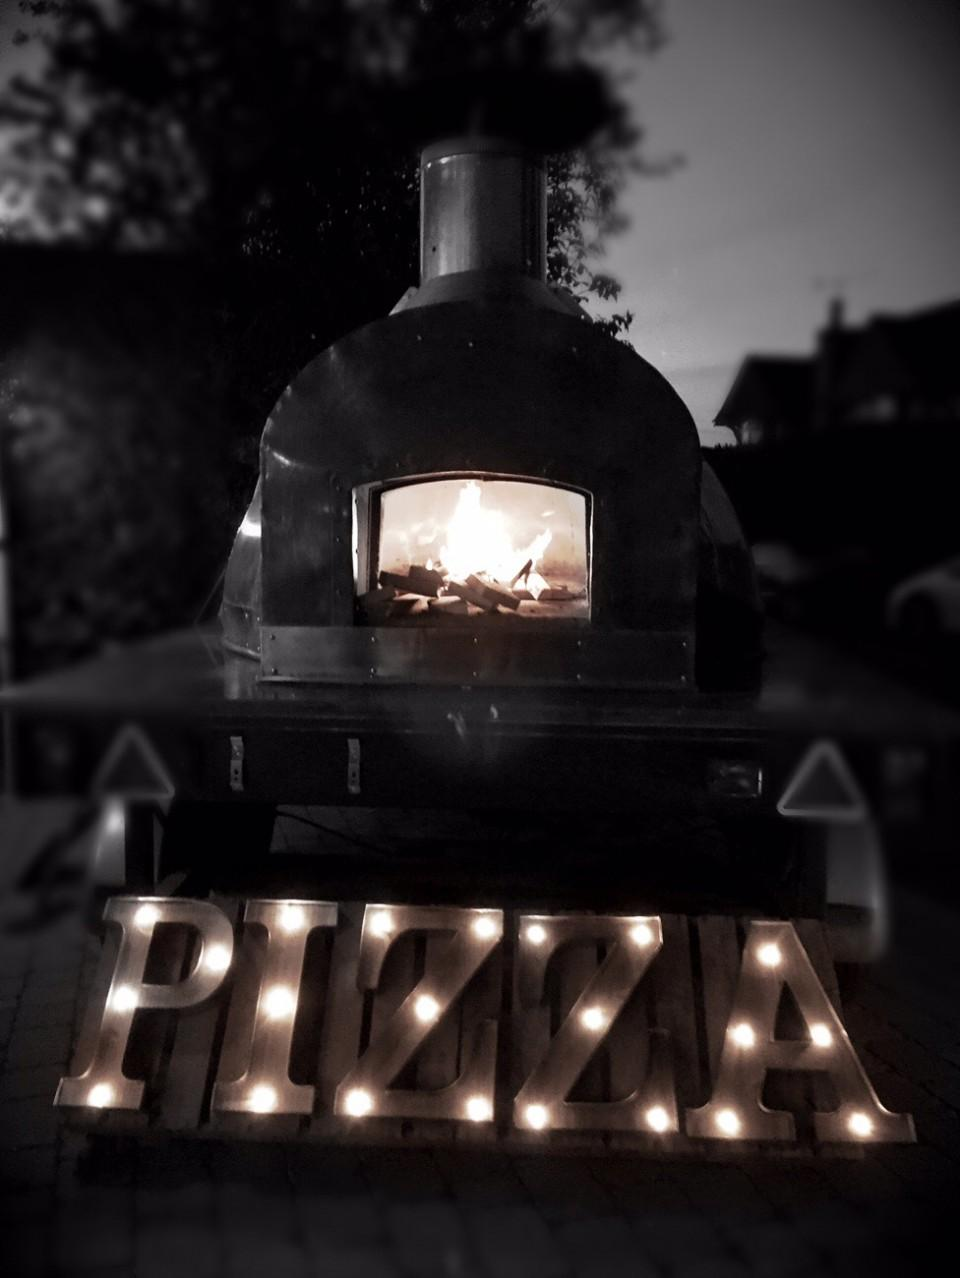 Wood Fired Wedding catering, fresh pizza cooked in a roaring Wood Fired oven.<br />A completely unique set up to make your day stand out from the crowd.